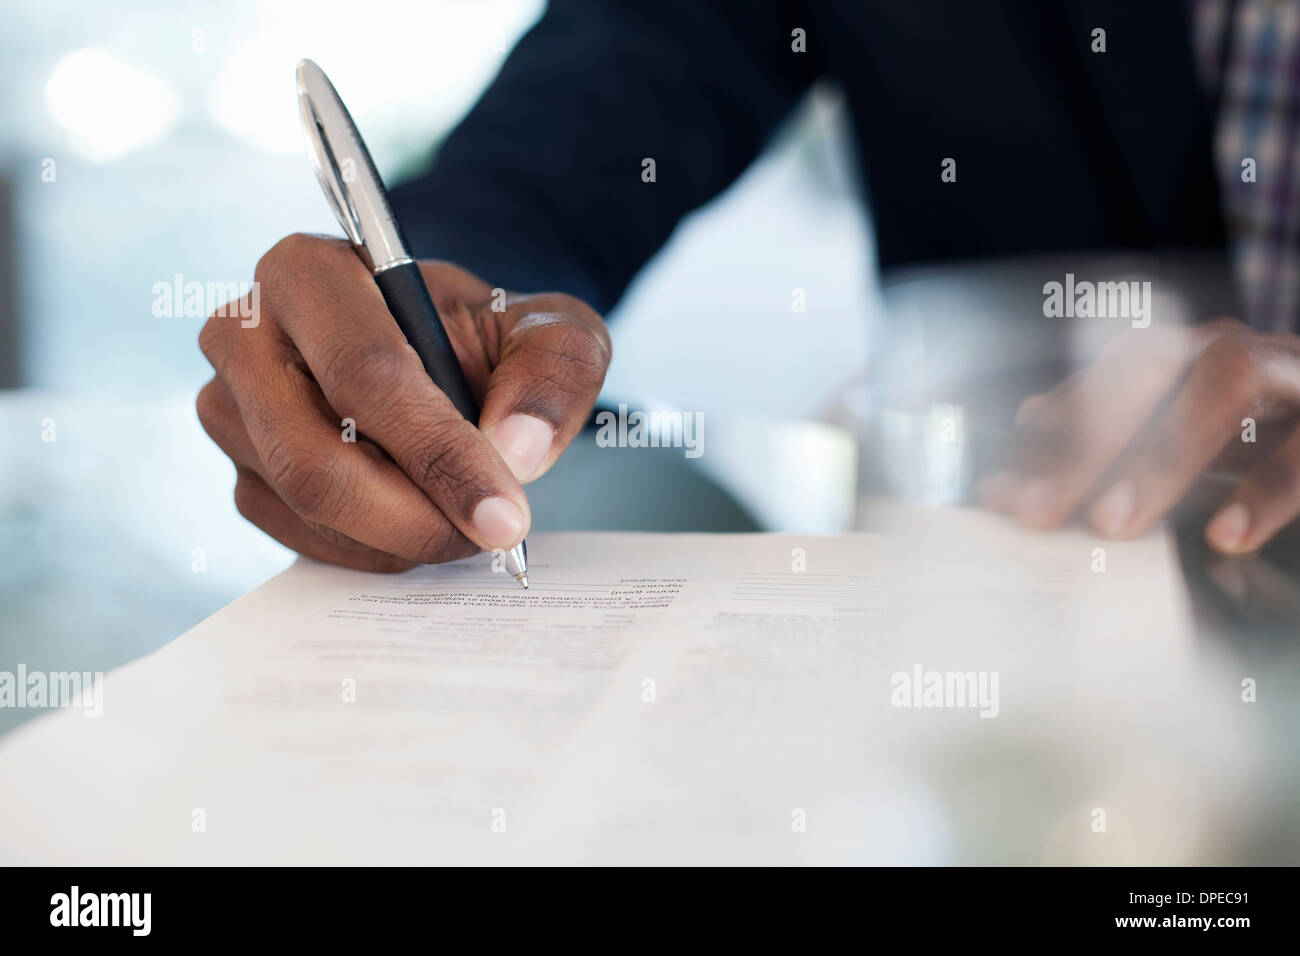 Cropped image of businessman signing paperwork - Stock Image